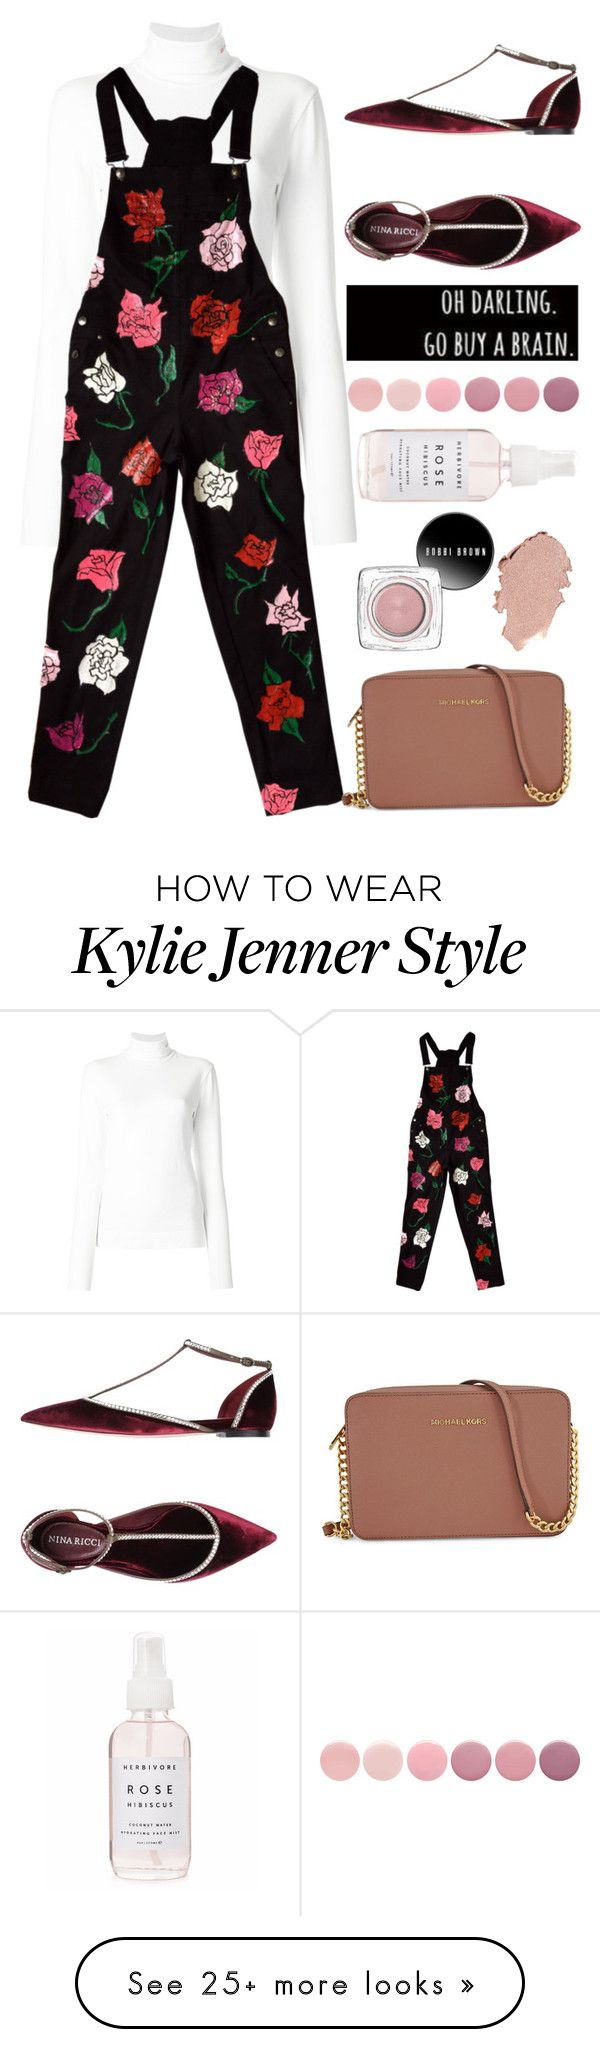 """""""rose me up"""" by lseed87 on Polyvore featuring Calvin Klein 205W39NYC, Nina Ricci, Deborah Lippmann, Holly's House and Michael Kors"""